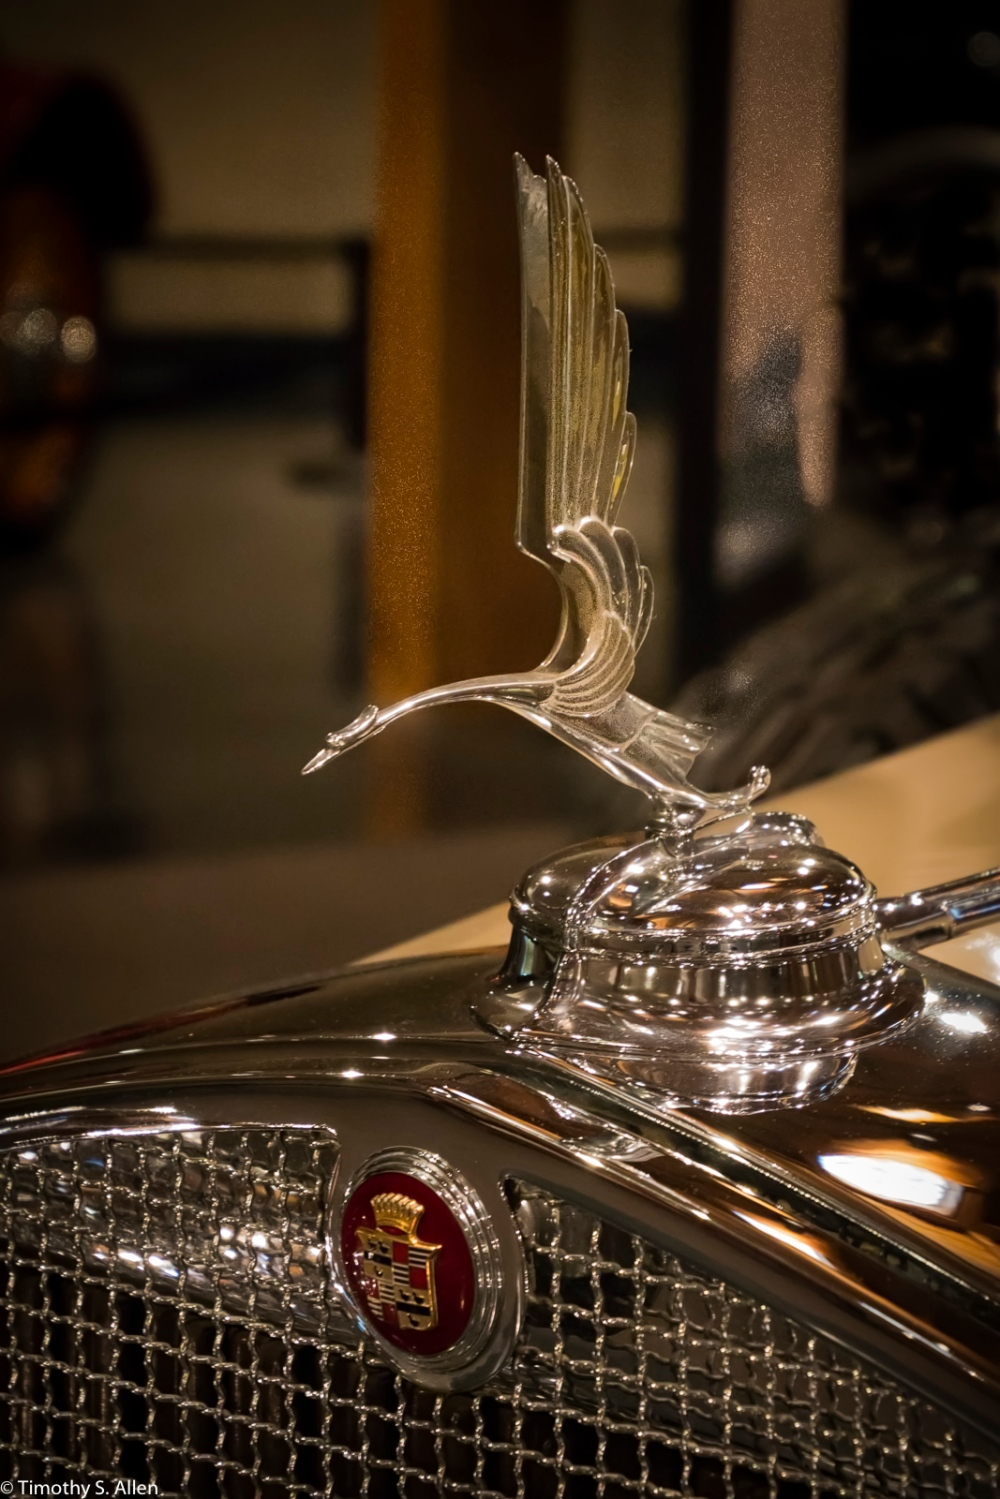 1930 Cadillac V-16 Convertible Coupe - Heritage Museums & Gardens Sandwich, MA August 29, 2016 http://heritagemuseumsandgardens.org/heritage-museums-classic-car-collection/1930-cadillac-v-16-convertible-coupe-2/